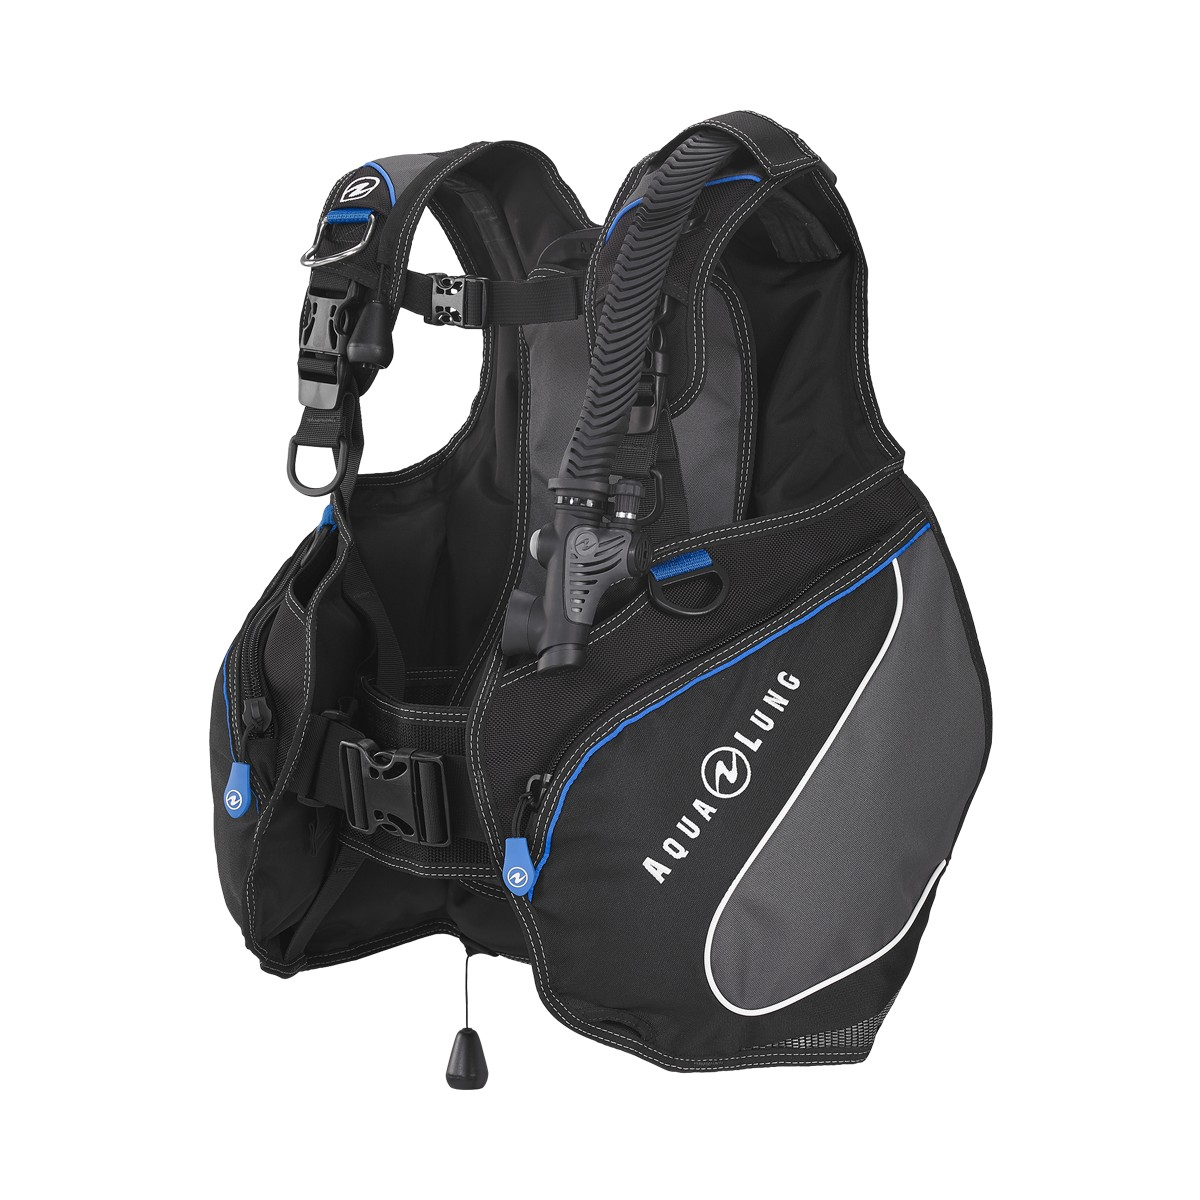 Aqua Lung Pro Jacket Style BCD